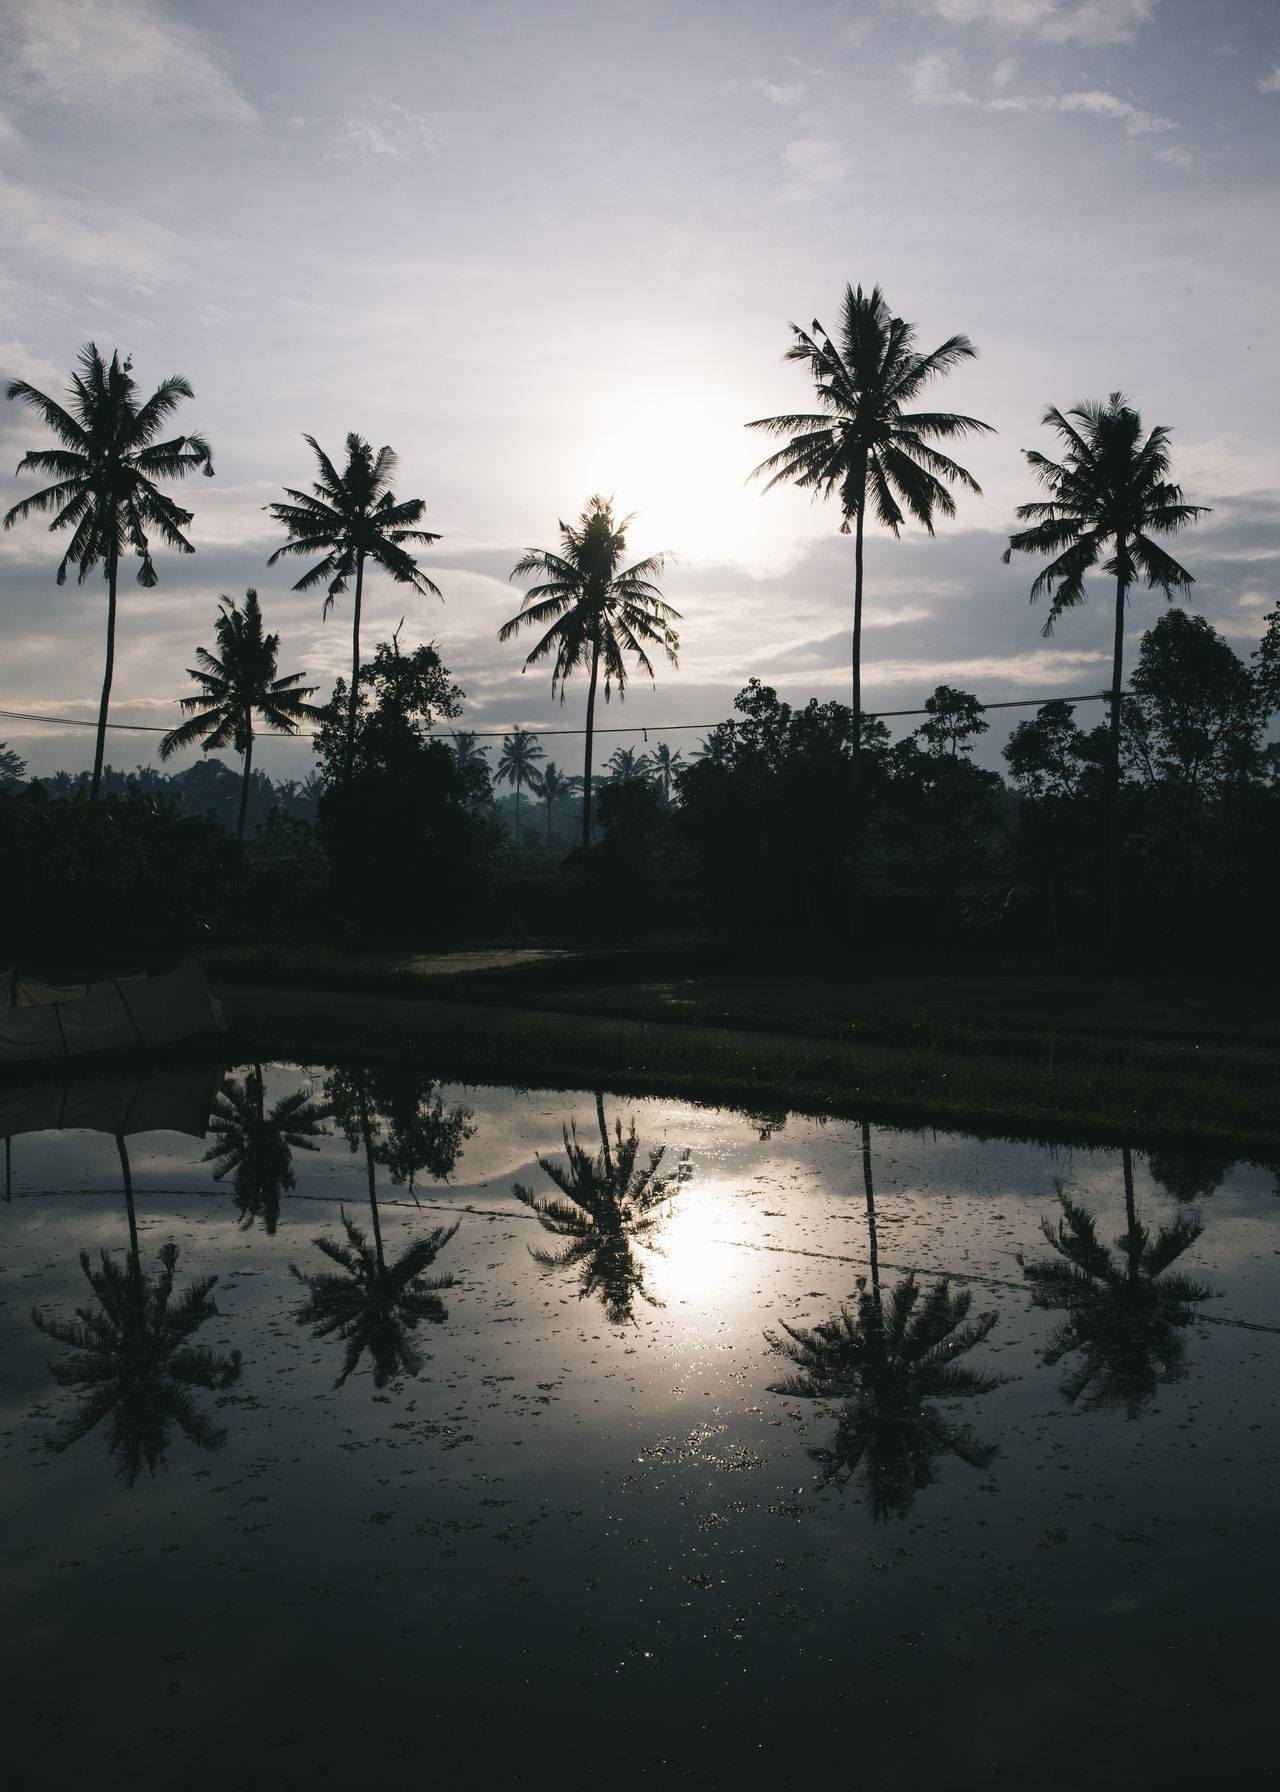 Ubud, Bali Bali Beauty Cloud - Sky Exotic Exoticism Hindu Holiday INDONESIA Palm Tree Reflection Silhouette Sky Sunset Travel Travel Travel Destinations Travel Photography Traveling Travelphotography Tree Tropical Climate Ubud Vacation Vacations Water